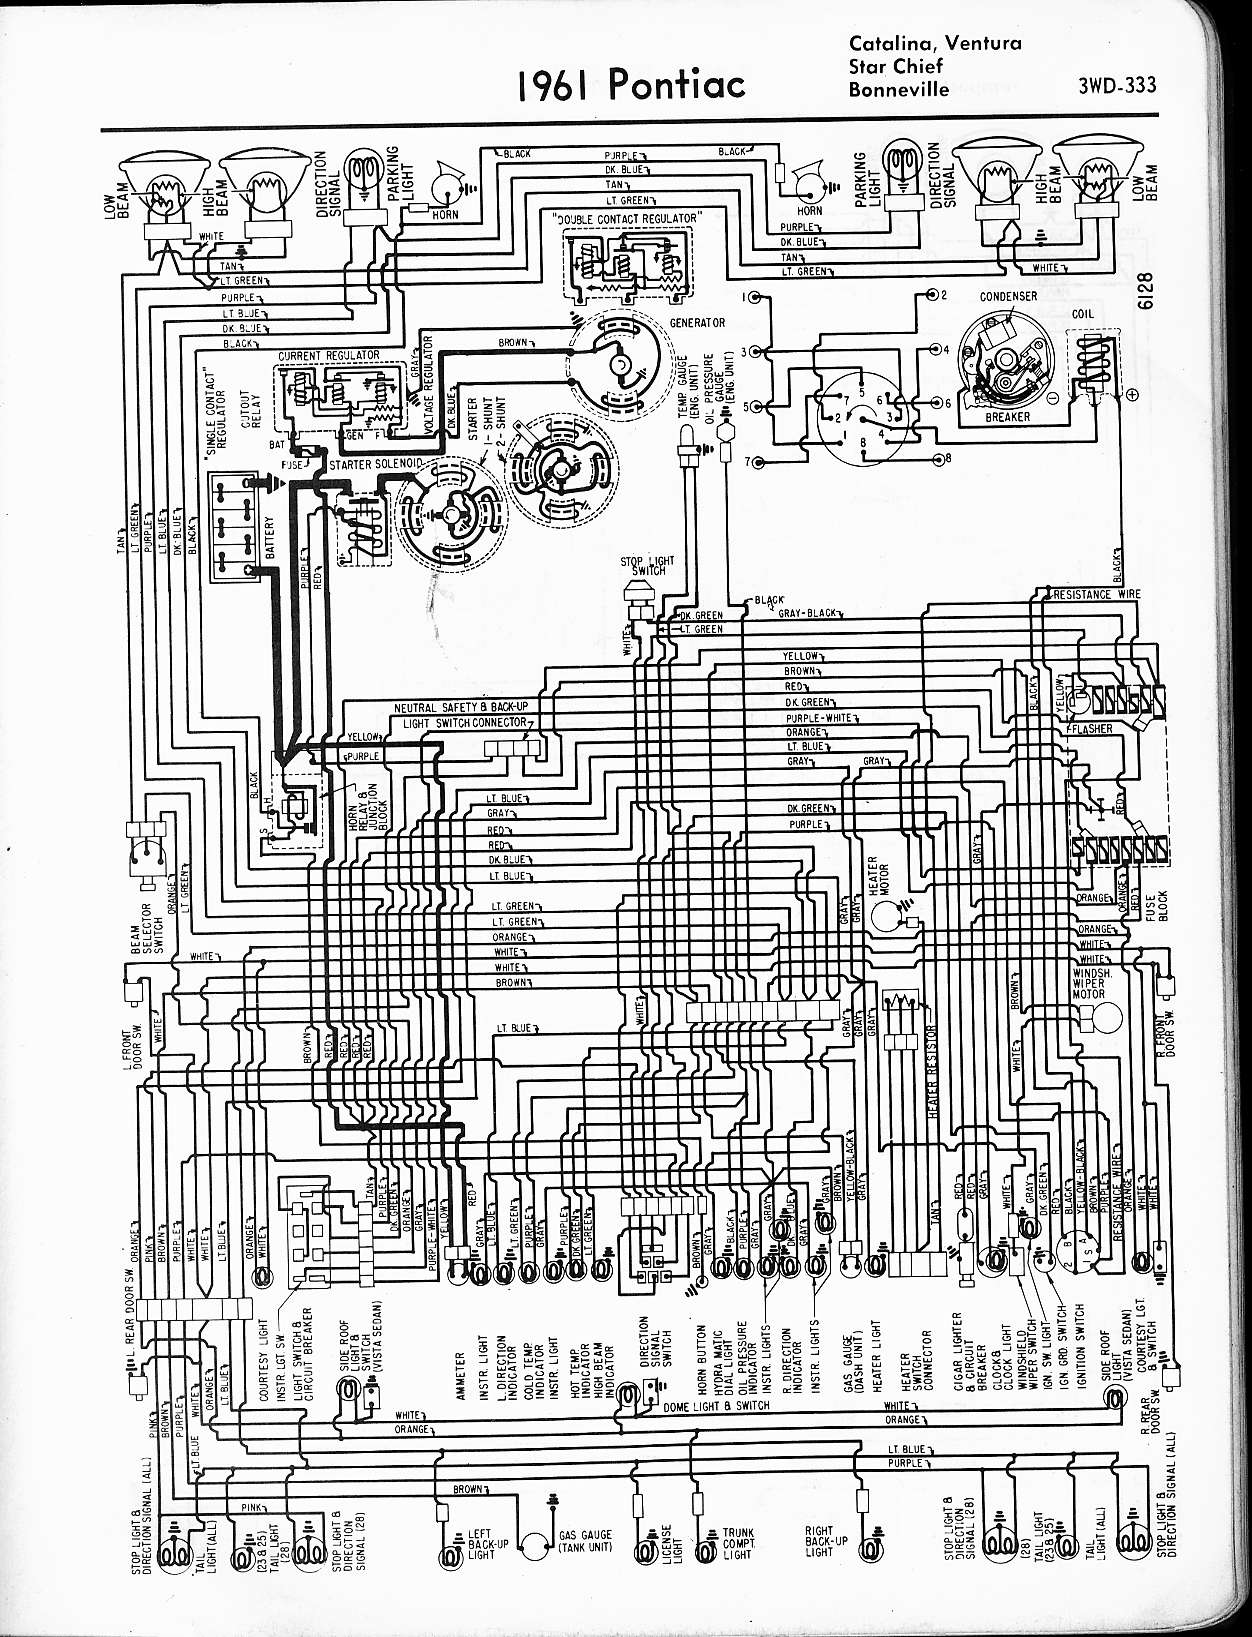 wallace racing wiring diagrams rh wallaceracing com 1964 pontiac parisienne wiring diagram 1964 pontiac catalina wiring diagram